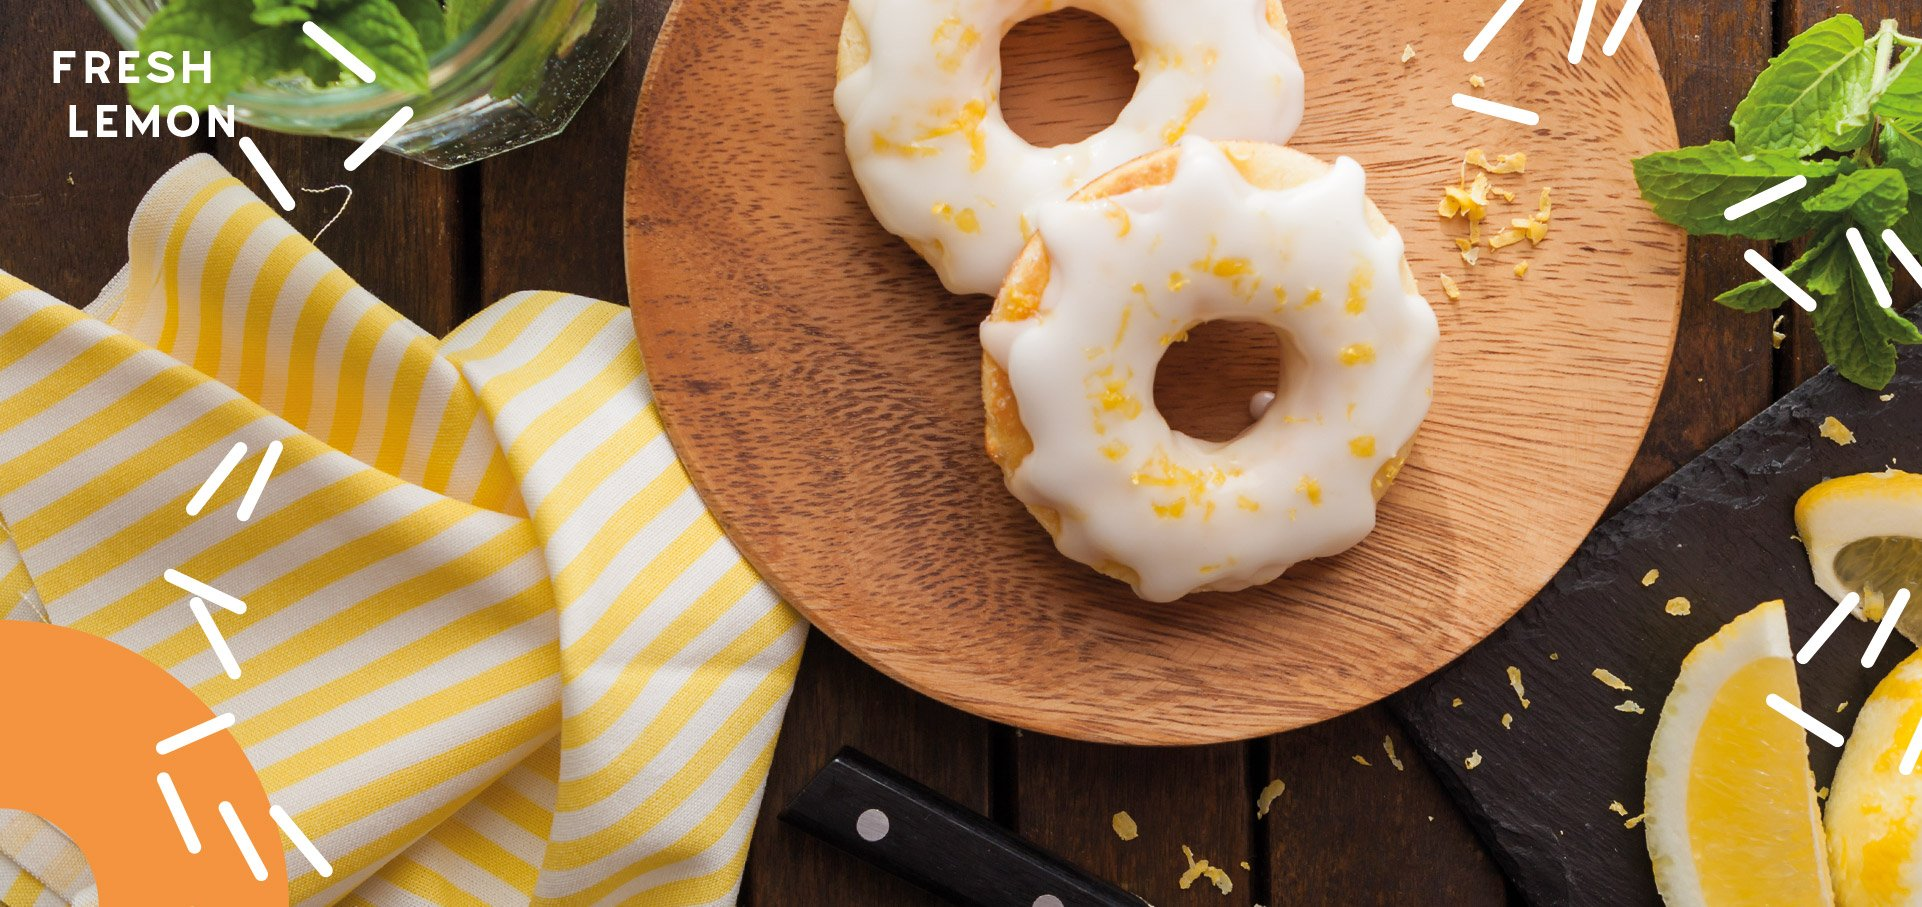 FRESH LEMON Protein Donuts Hilo Donuts